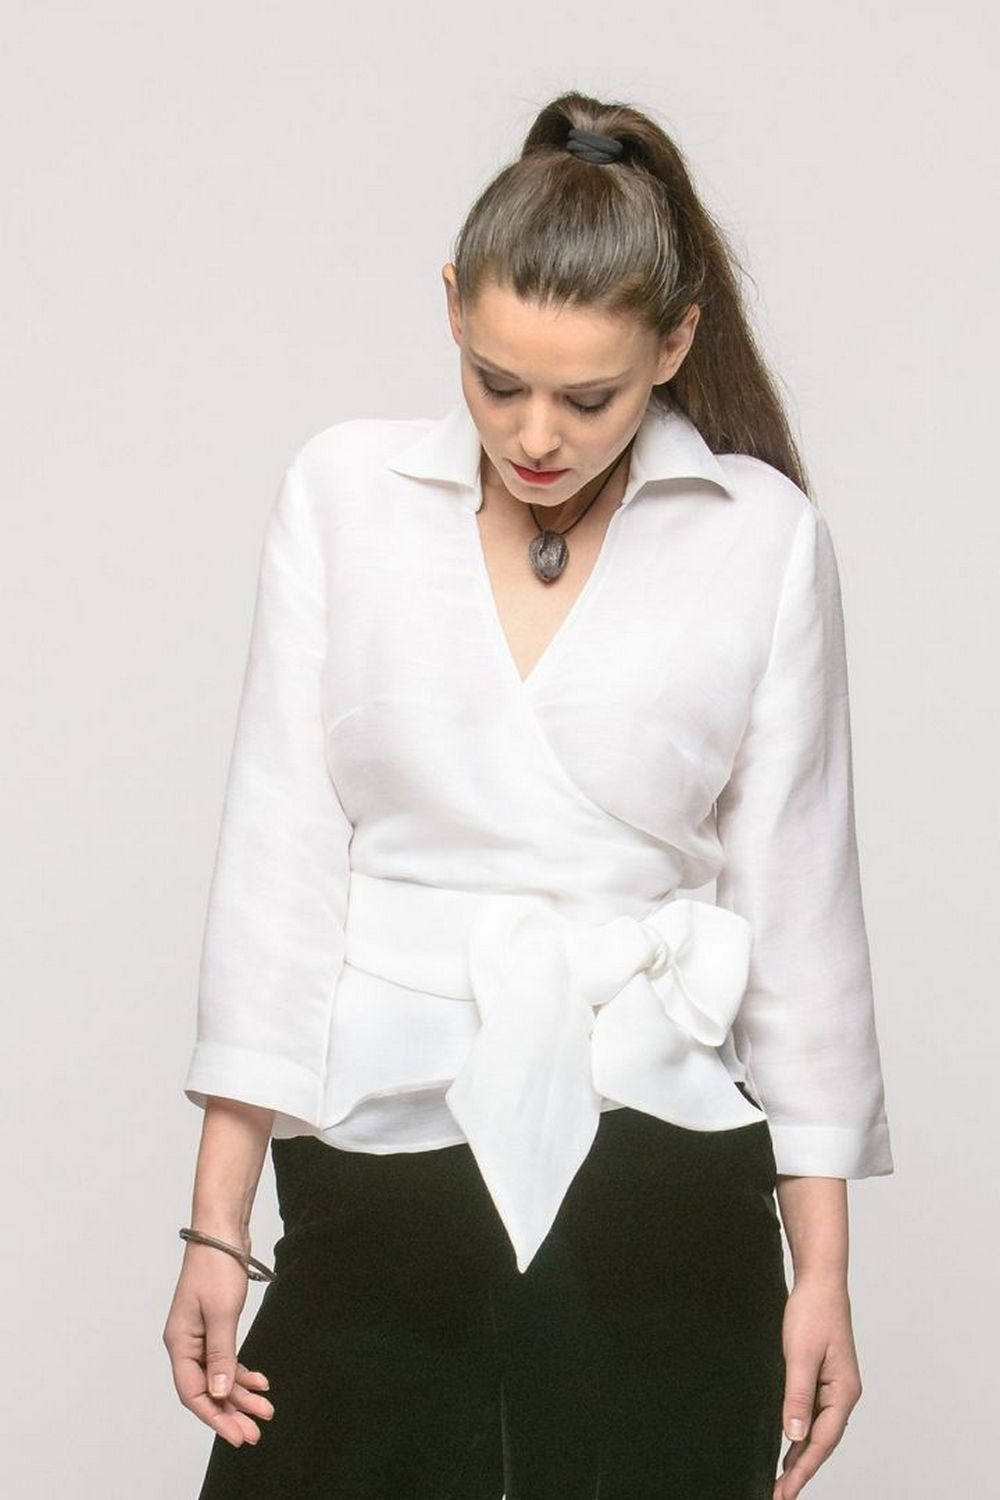 Buy Elegant silk white women`s blouse, Long sleeve V neck office casual blouse